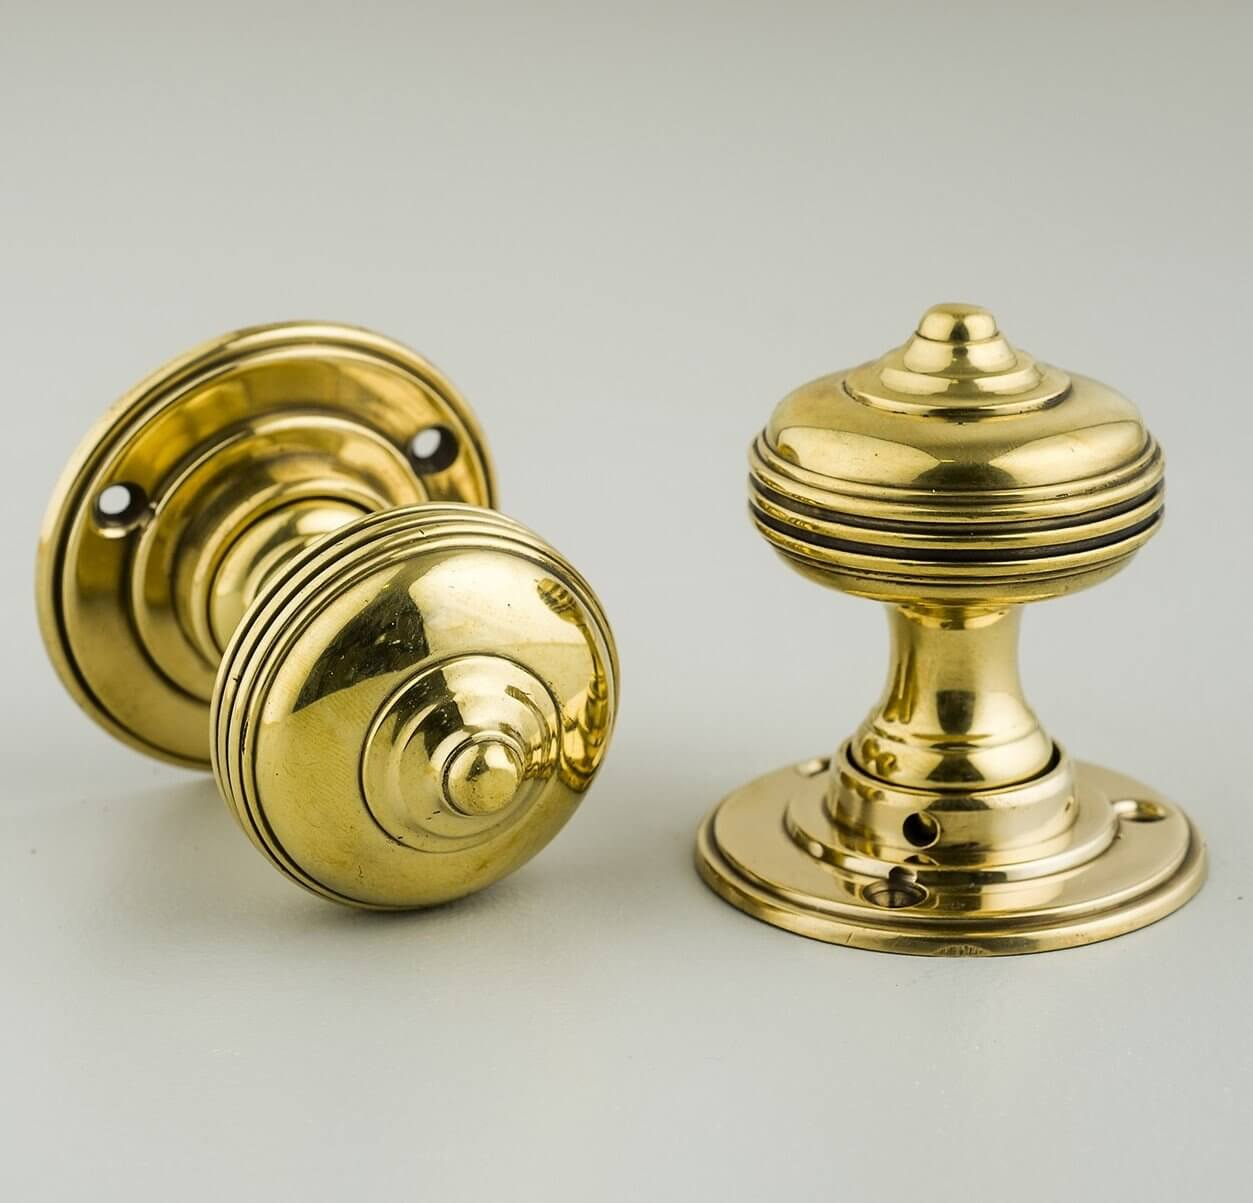 Queen Anne Regency Door Knobs (Pair) - Brass 25% - Only Two Left In Stock